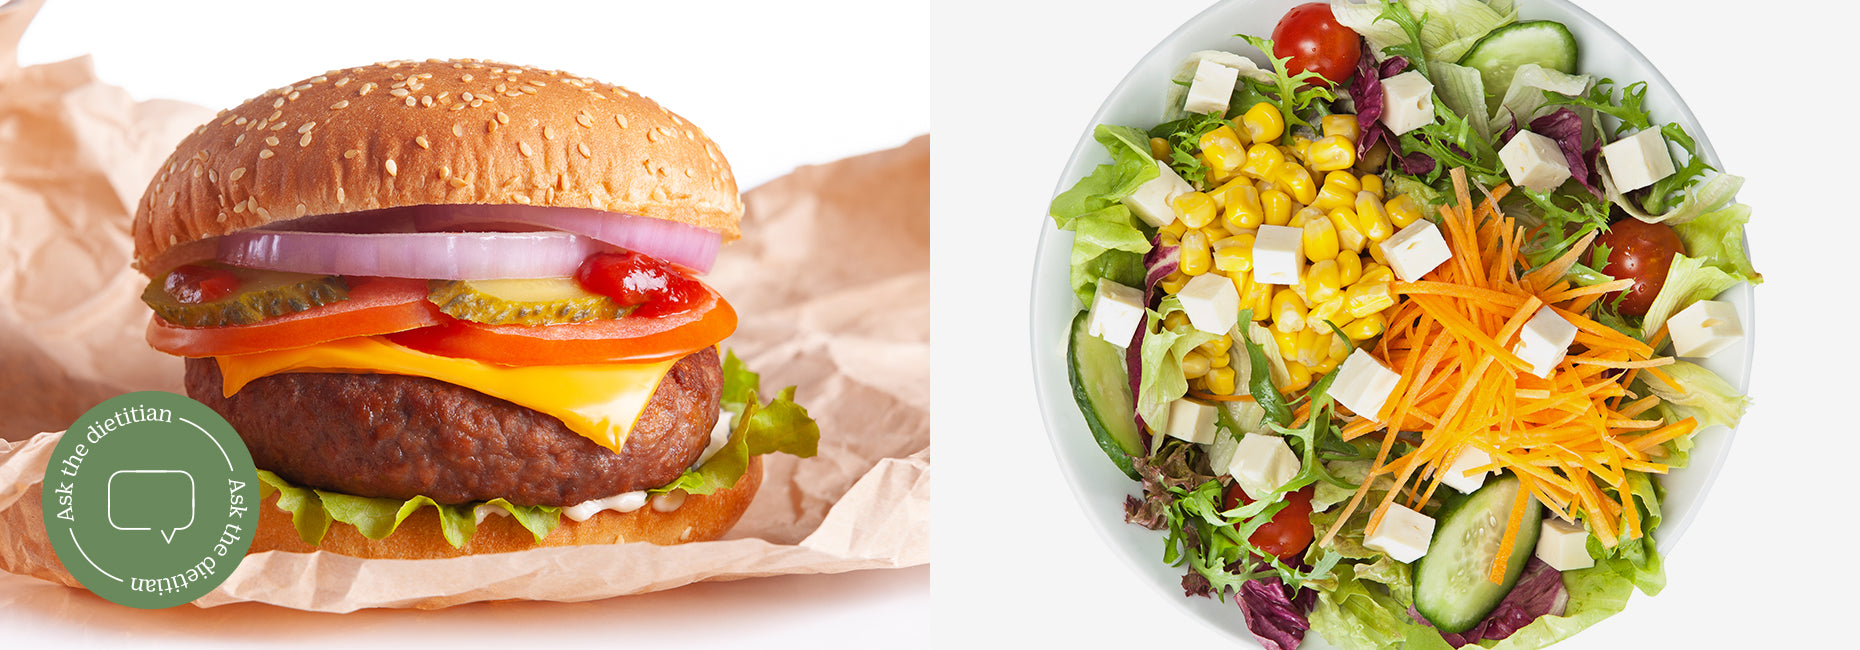 "Ask the Dietitian: ""Sometimes fast food is my only option. What should I stick to?"""